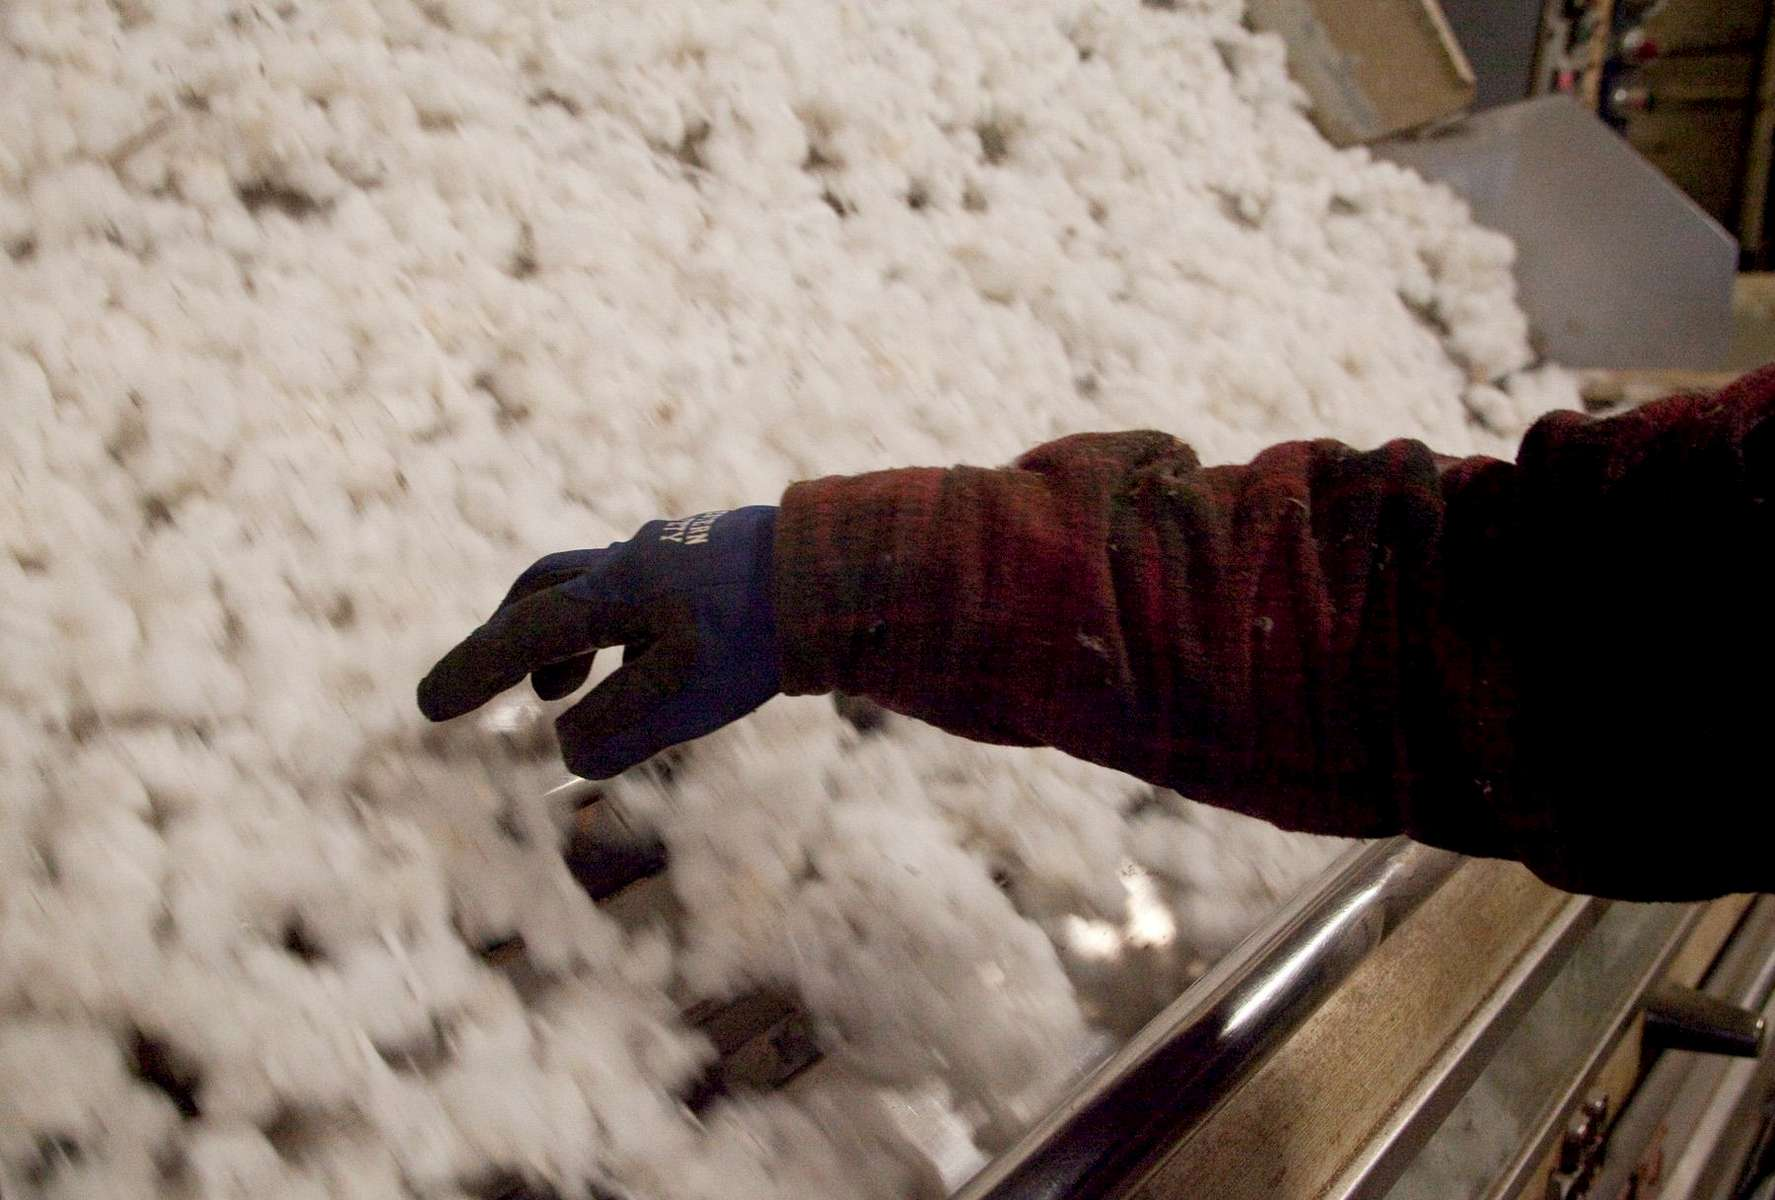 Gin operator Robert Espino of Weslaco, Texas, checks on the ginning process at the Minturn Cotton Company in Minturn, South Carolina November 27, 2012. Espino, like many of the workers at the gin, are skilled migrant workers who follow the cotton crop as it is harvested throughout the Southern United States.   REUTERS/Randall Hill (UNITED STATES)